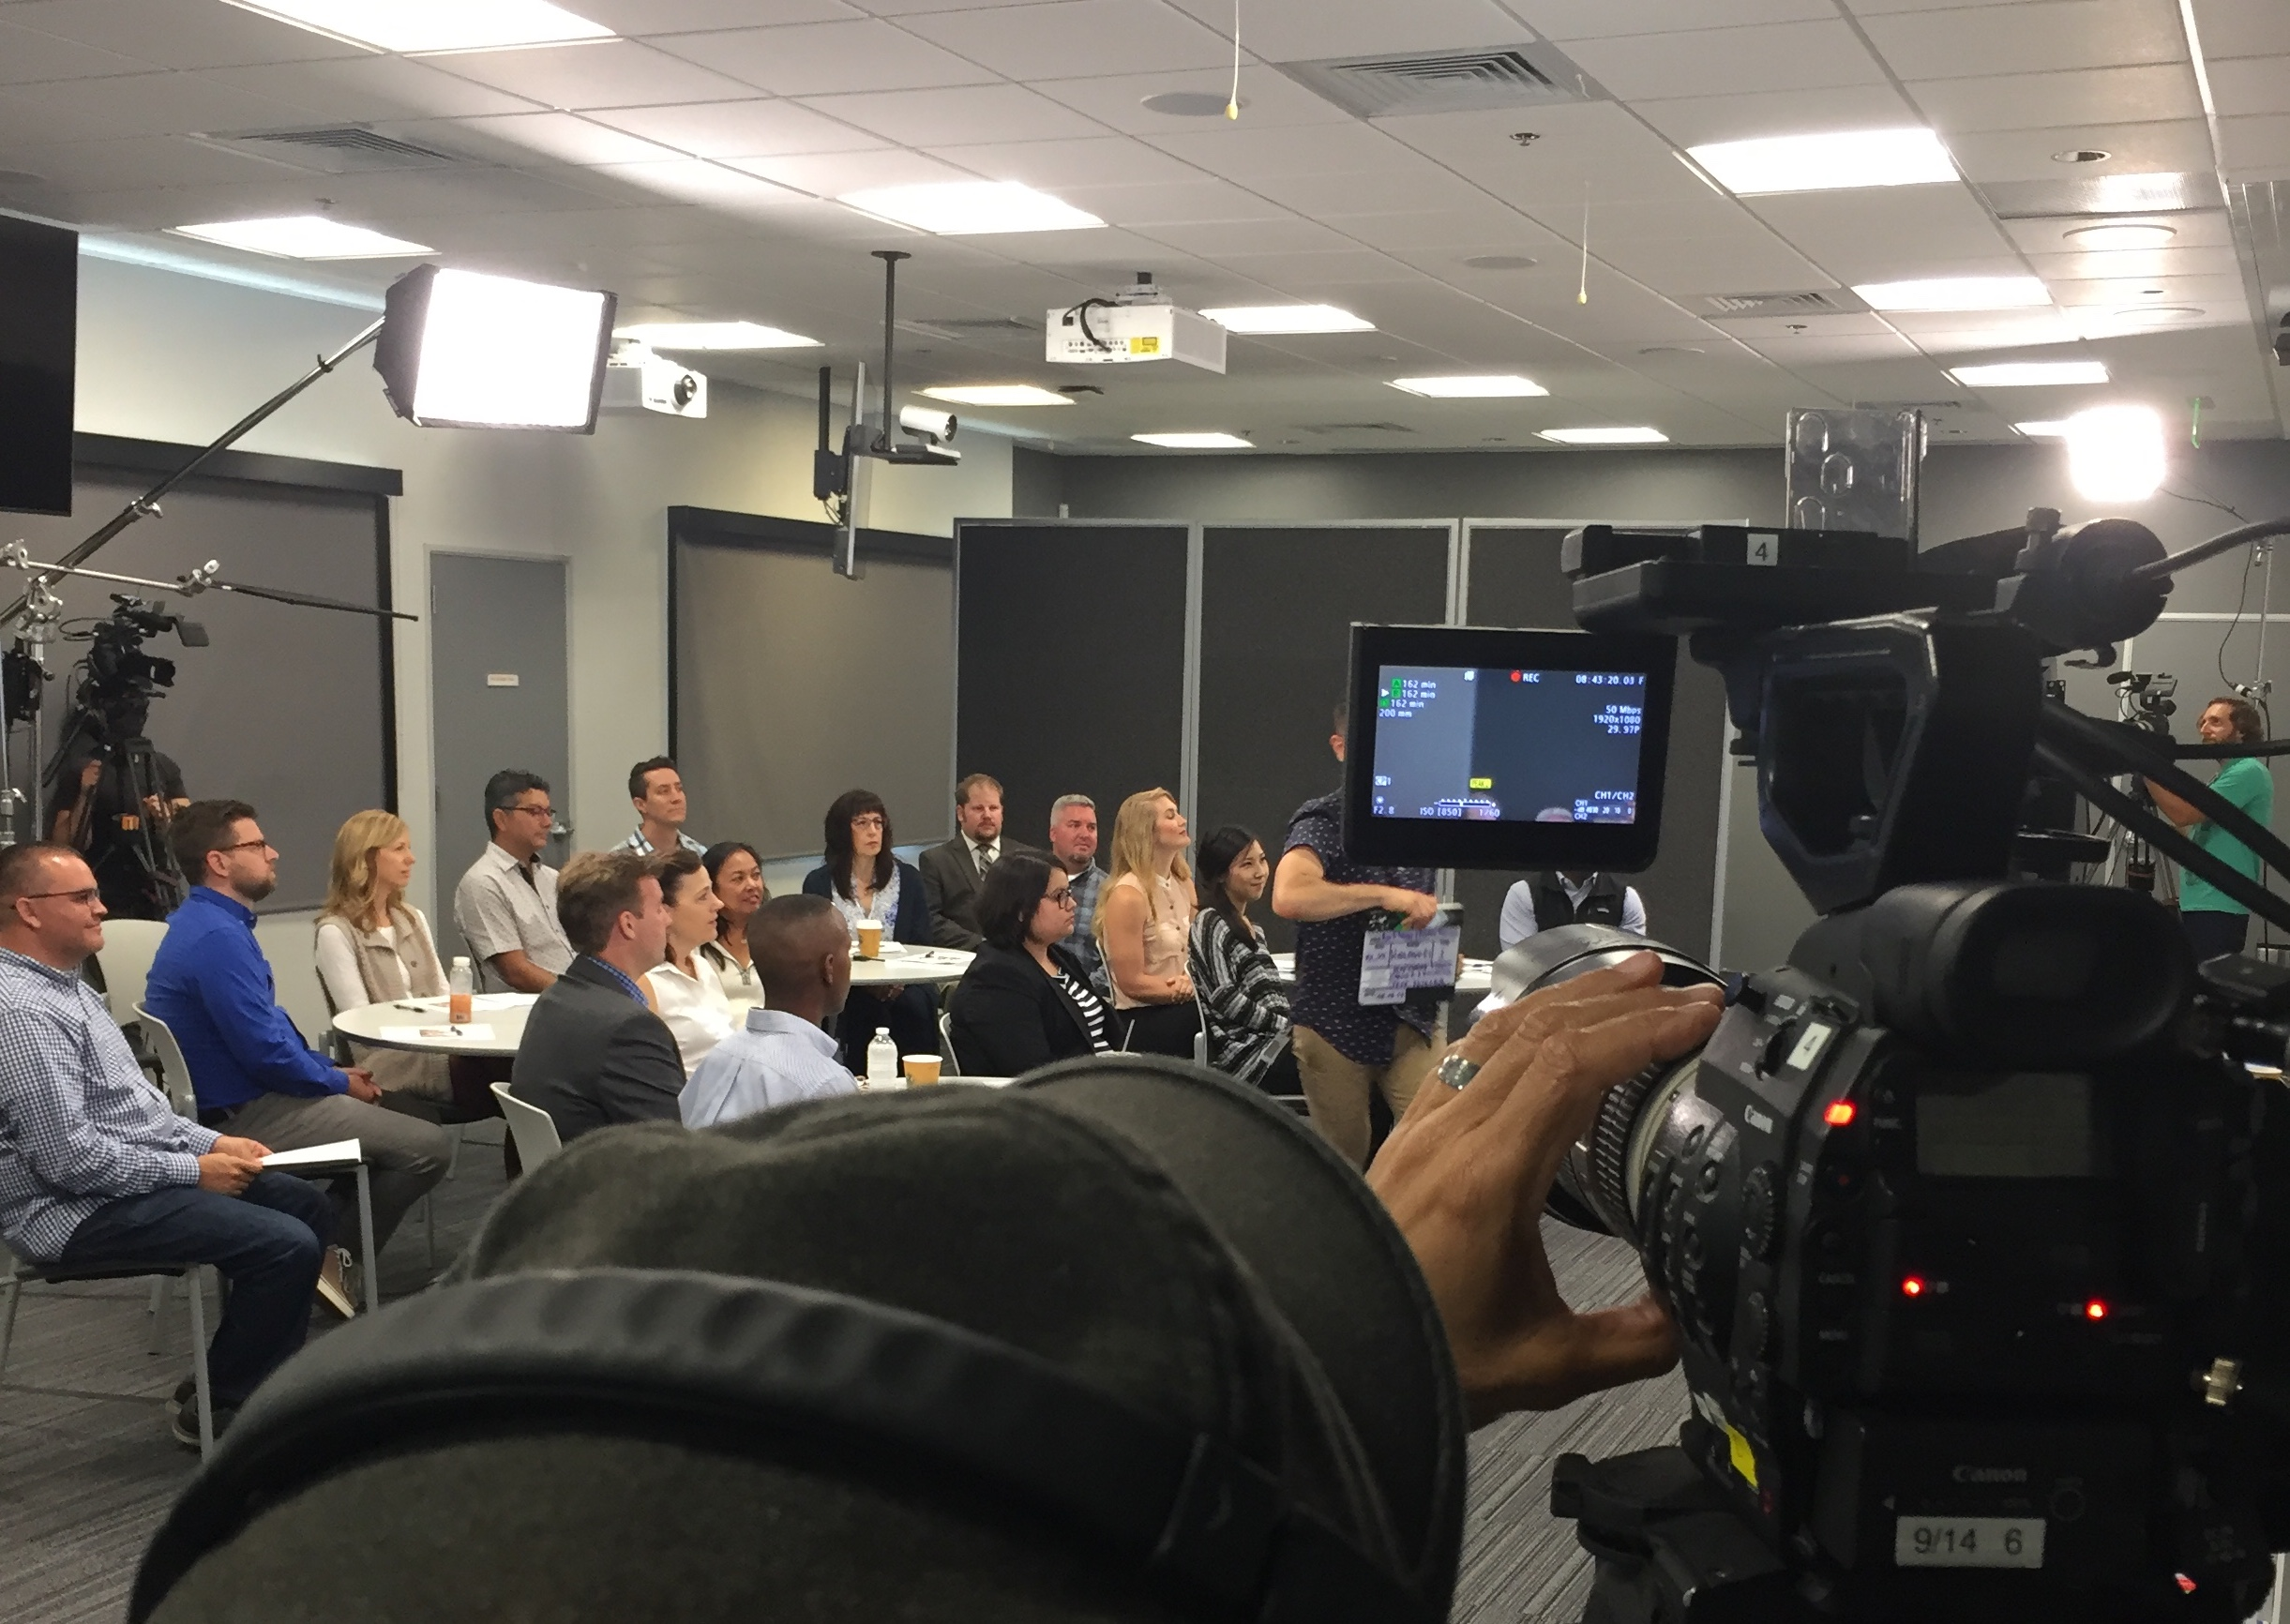 Part of the course was filmed in front of a live class. Photo credit: Samantha Coveleski-Mazur